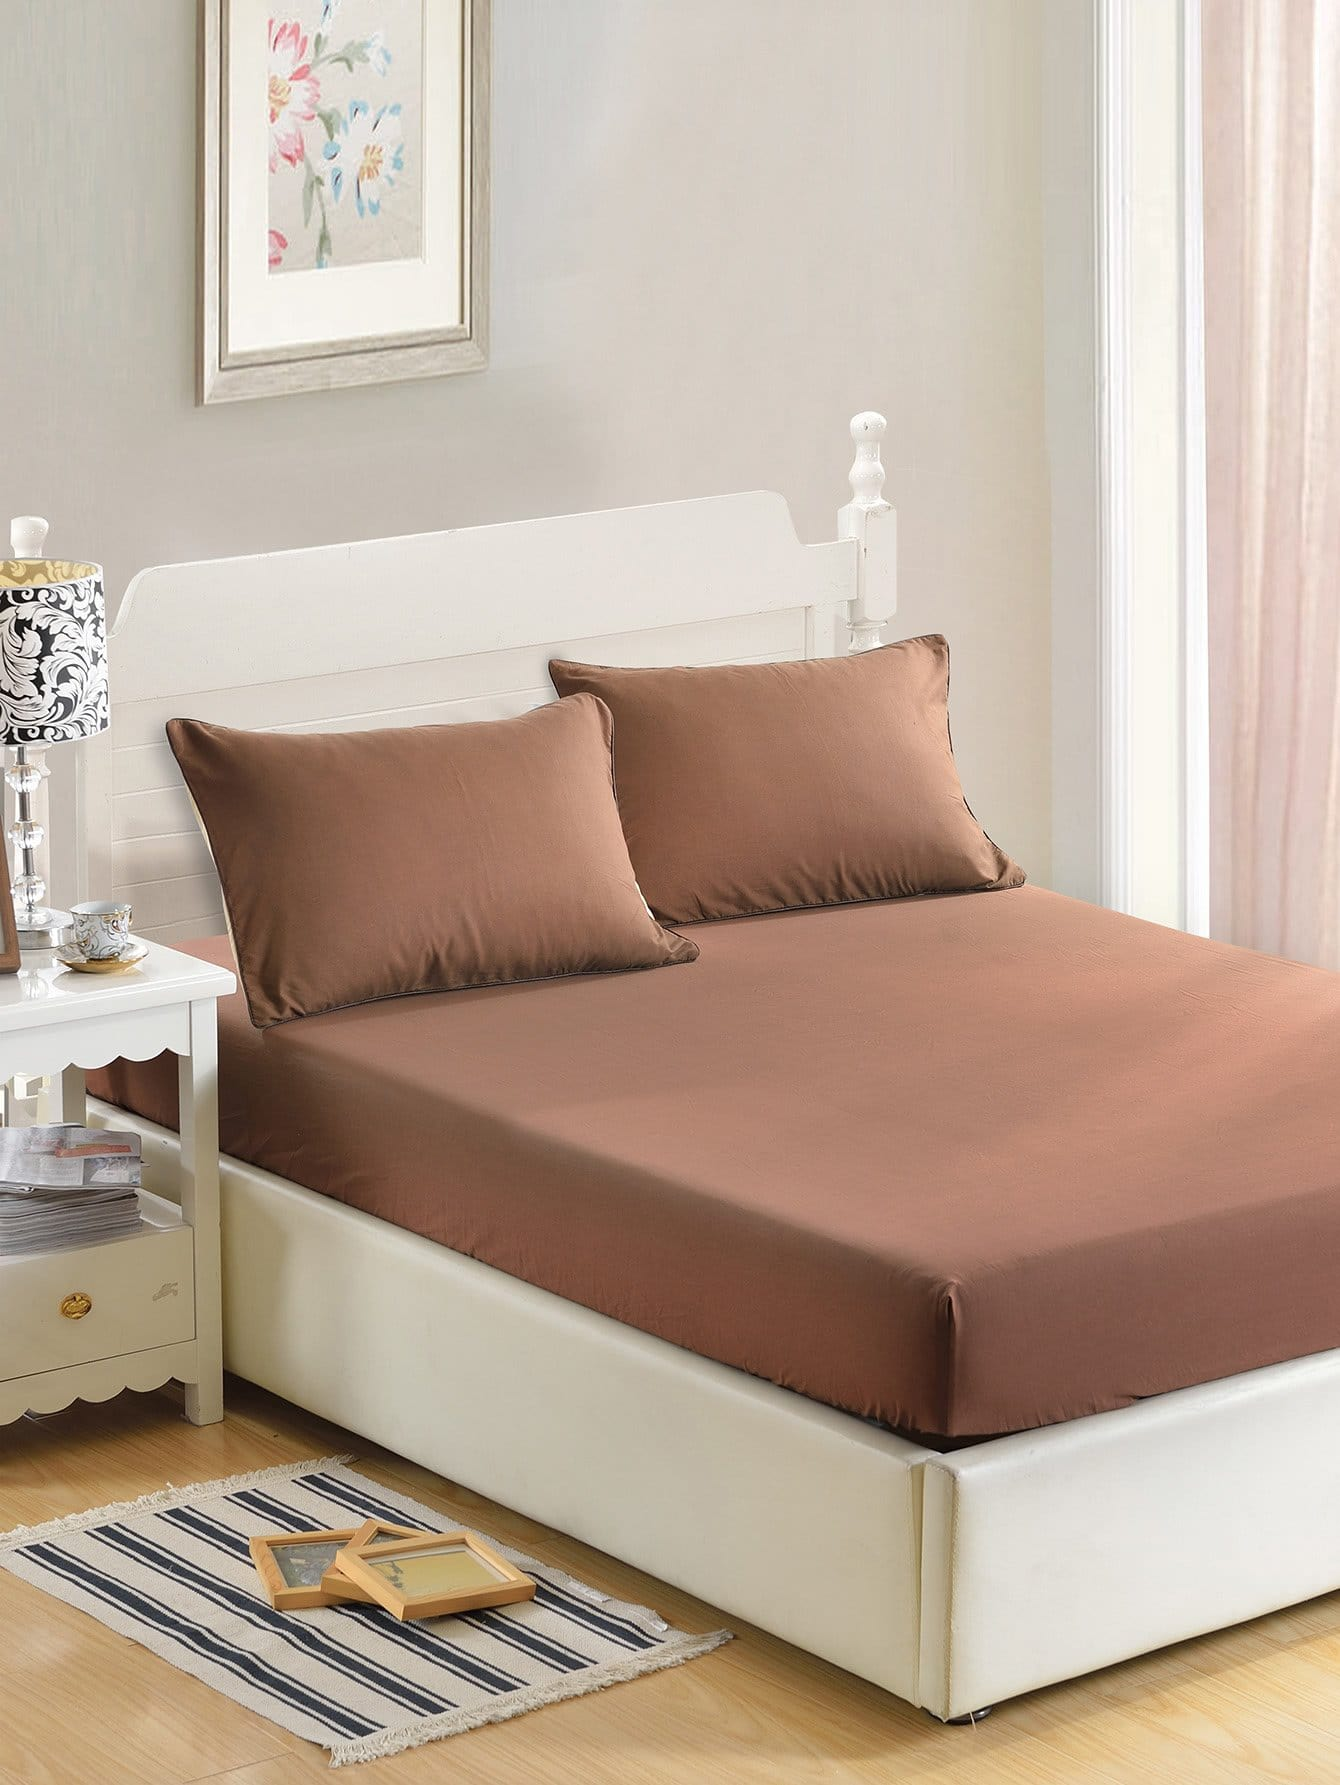 Solid Color Fitted Sheet простыни candide простыня ivory cotton fitted sheet 130г м2 40x80 см